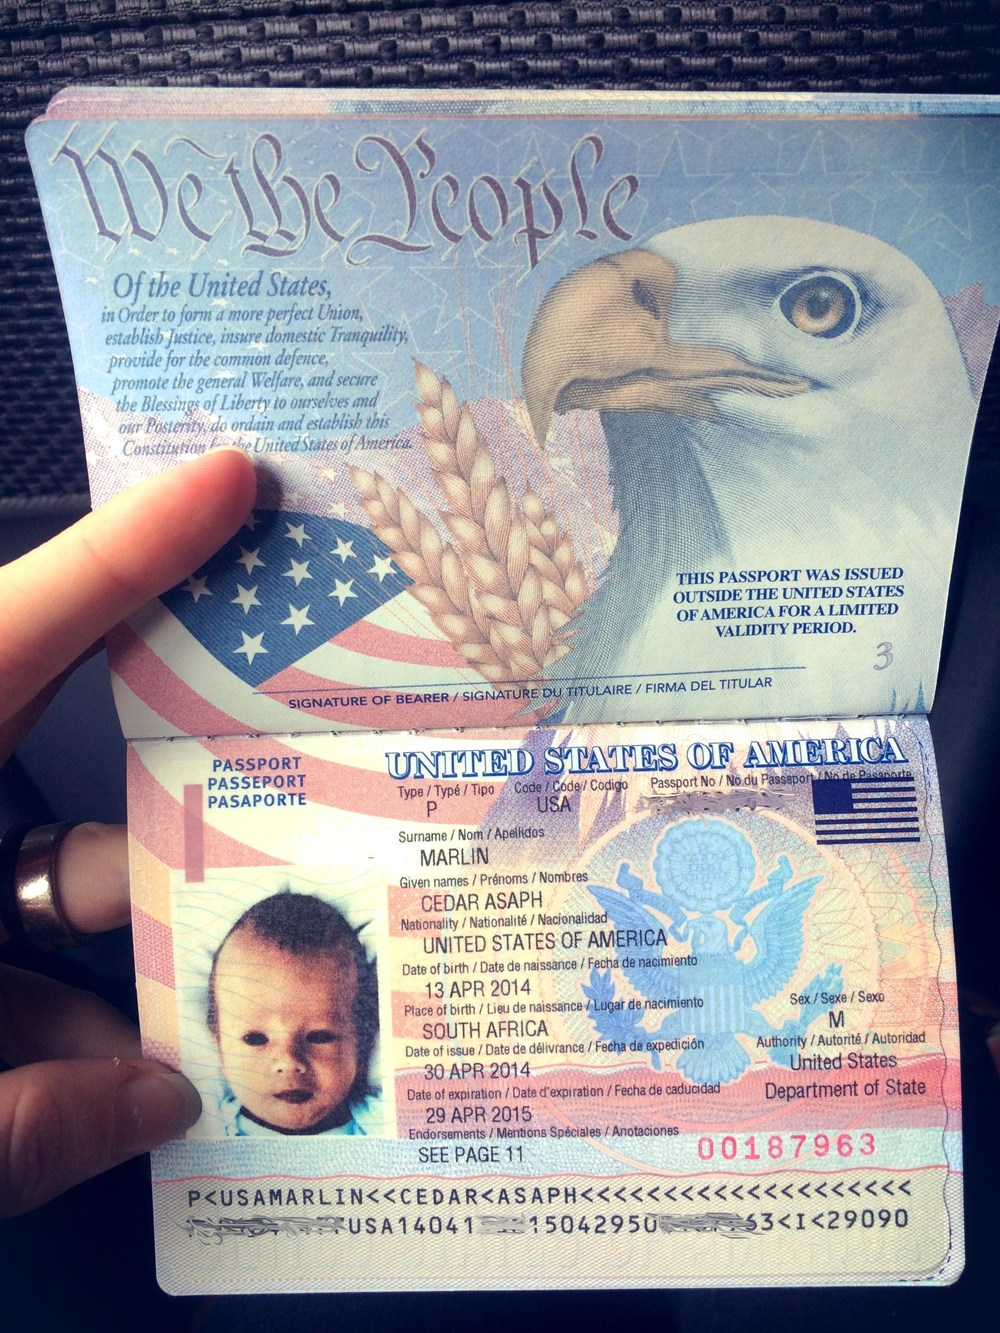 creepy alien baby passport, they stretched his head.